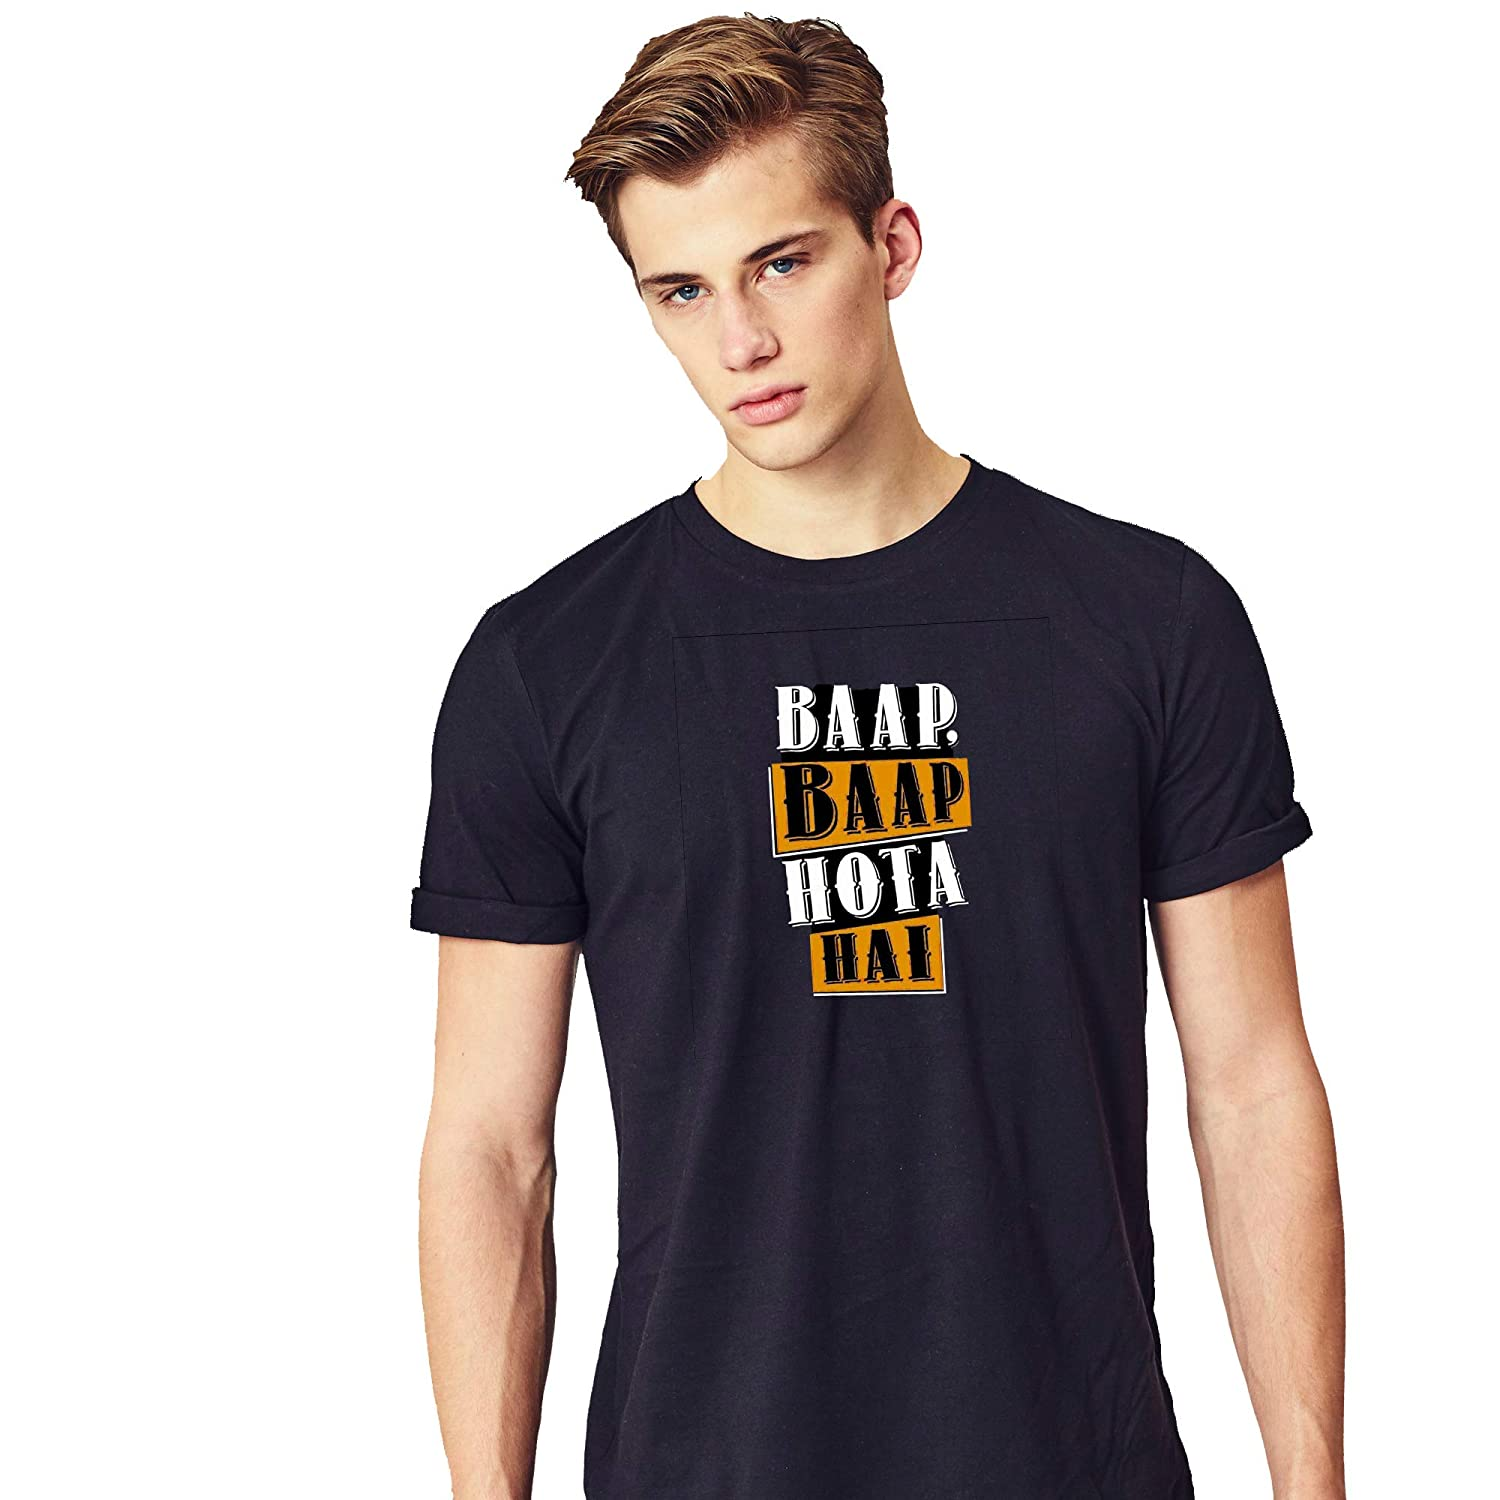 341014ed4 Funny (baap baap hota hai) Printed T Shirt for Men Cotton Round Neck:  Amazon.in: Clothing & Accessories